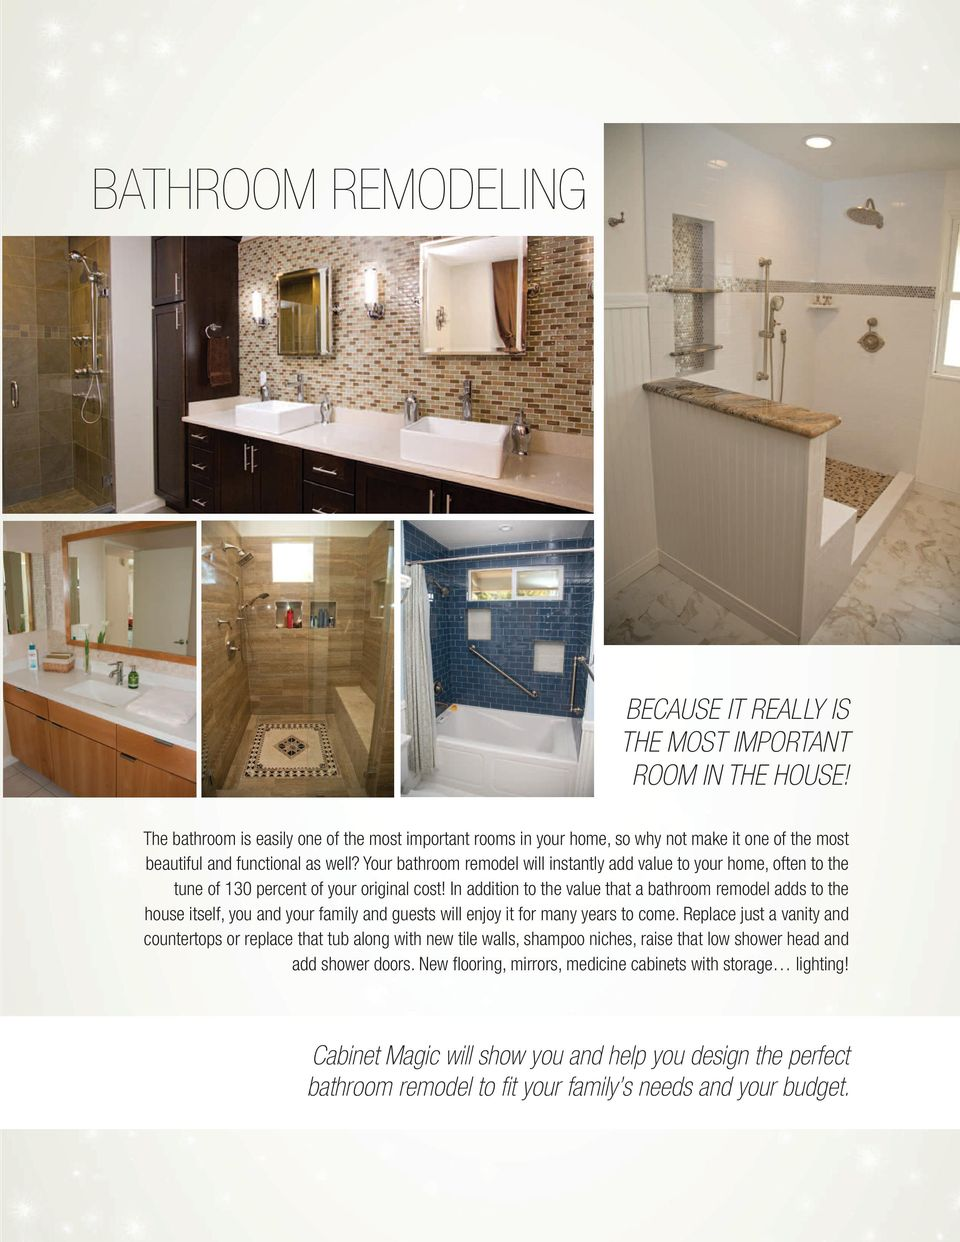 Your bathroom remodel will instantly add value to your home, often to the tune of 130 percent of your original cost!